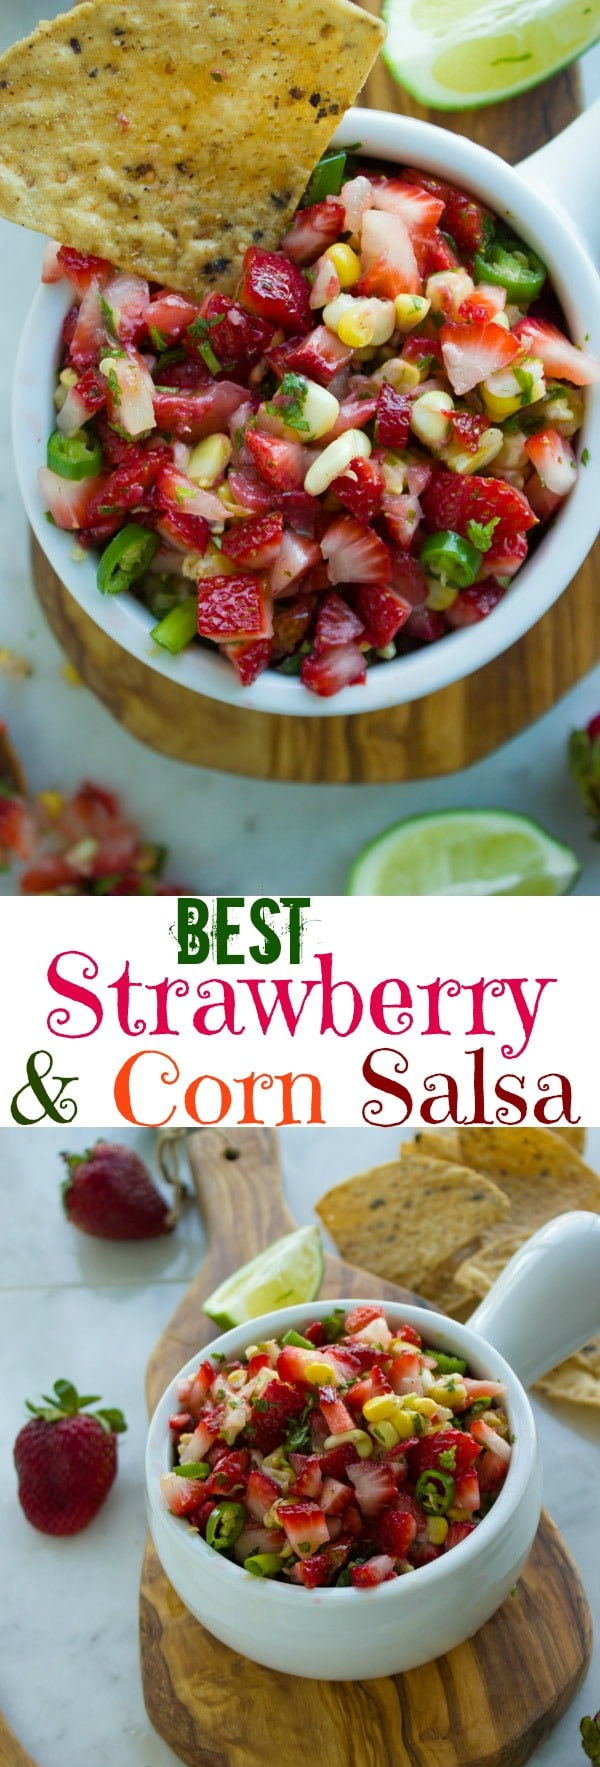 This Best Strawberry Corn Salsa recipe is one you can't miss! Sweet strawberries and corn with plenty of spice from habanero peppers, all in a sauce made with zesty lime, cilantro, parsley, scallions and olive oil.#appetizer, #strawberrierecipes, #salsarecipes, #dip